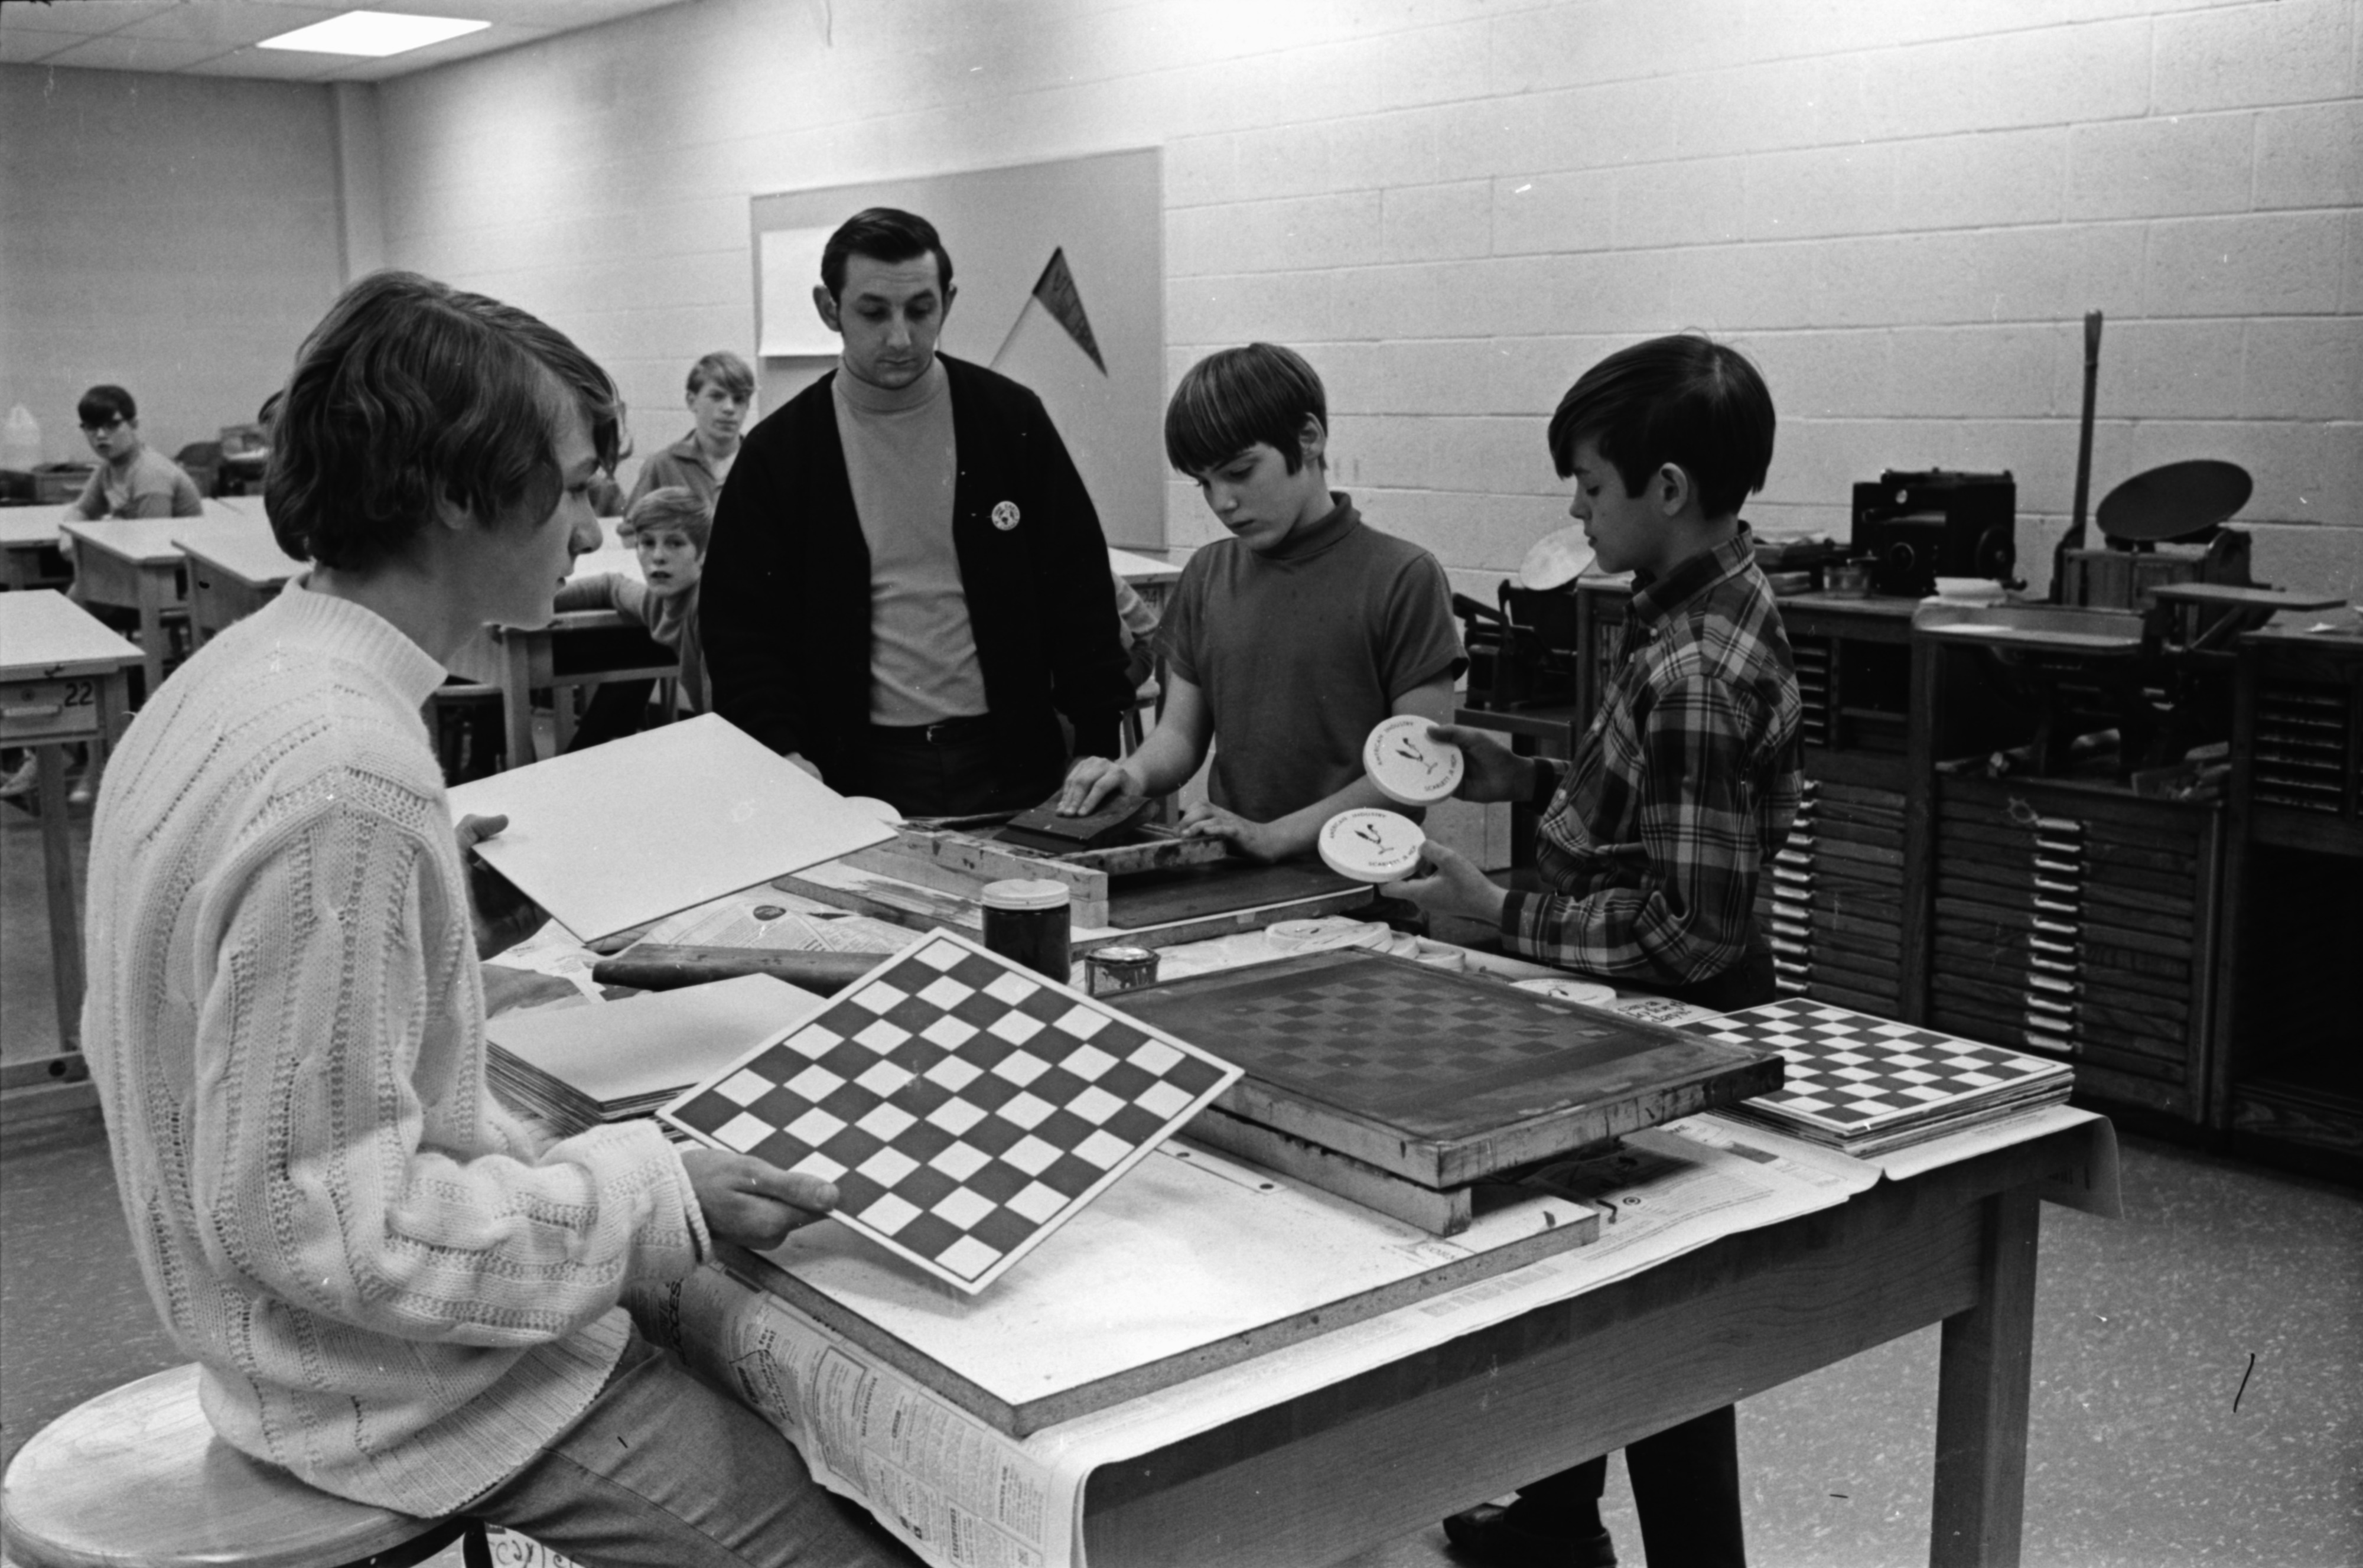 Students Make Checkerboard in Industrial Education Course at Scarlett Junior High, March 1970 image